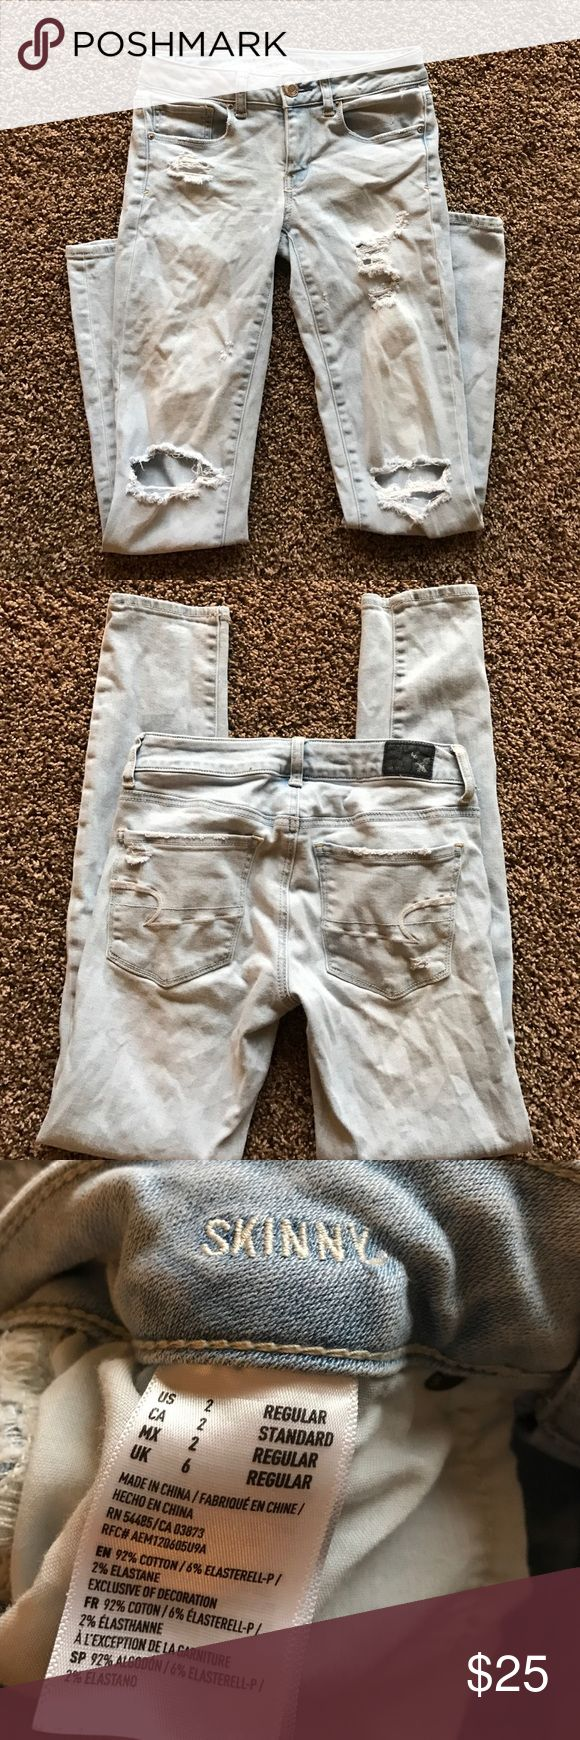 American Eagle light blue ripped jeans AE light blue ripped jeans. In great condition! Offers are welcome 💙 American Eagle Outfitters Jeans Skinny